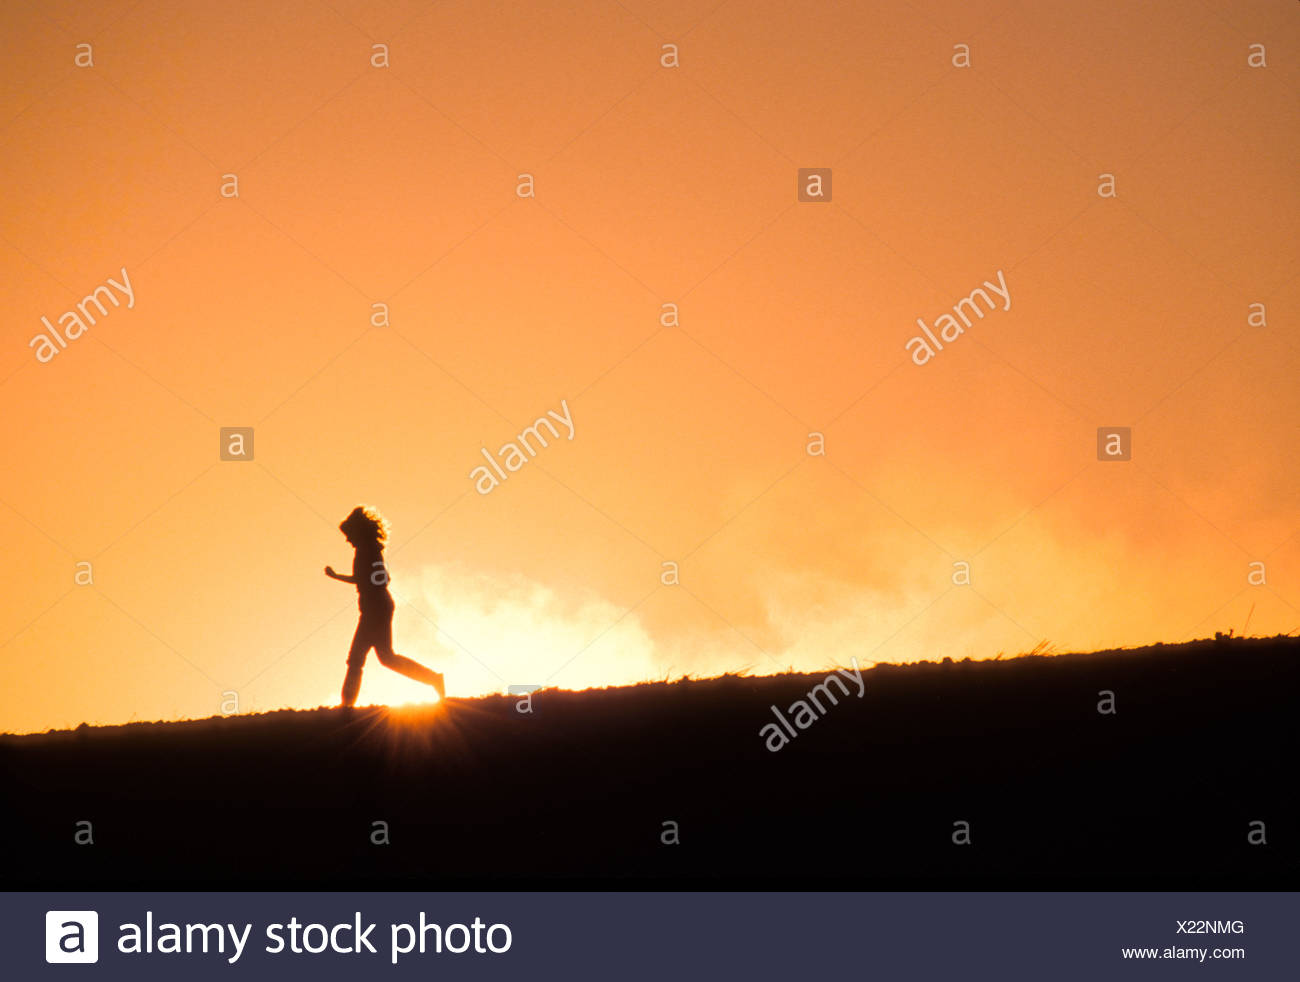 Determined, athletic runner running downhill against sunset in remote area - Stock Image